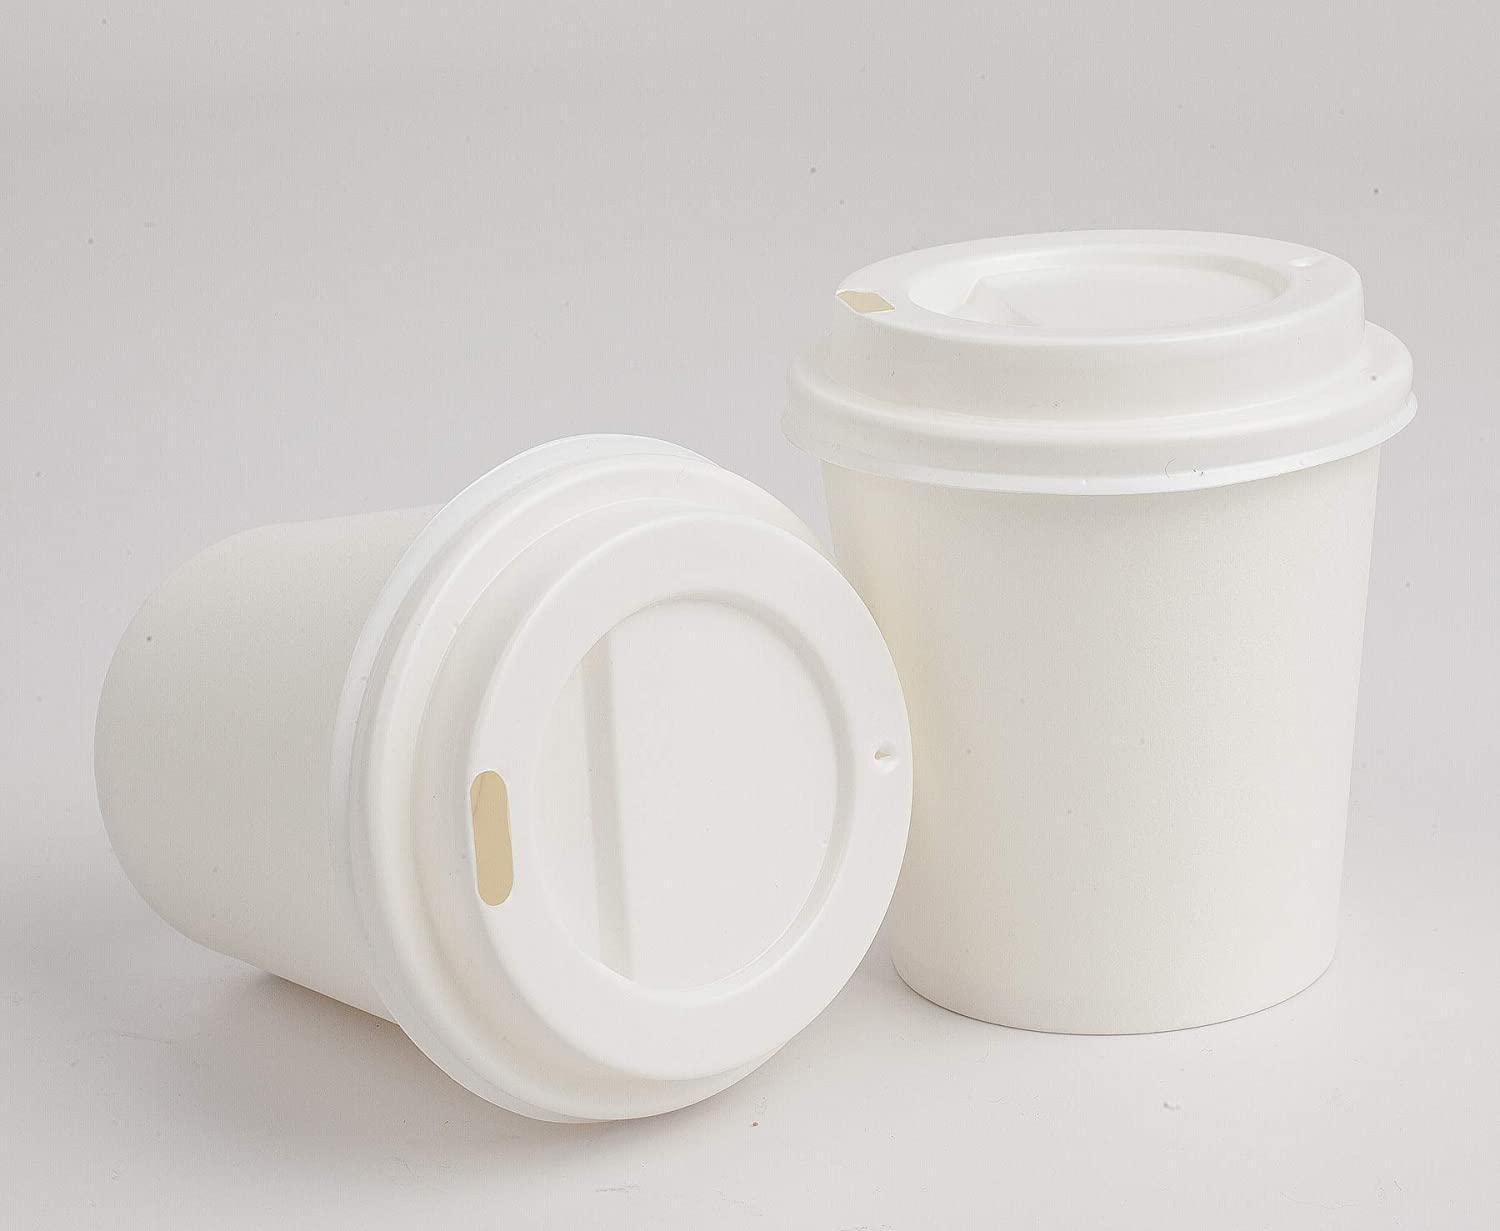 •GOLDEN APPLE, Disposable Paper Coffee Cups 4 oz. Cups & Lids Quantity 50 cups per pack.